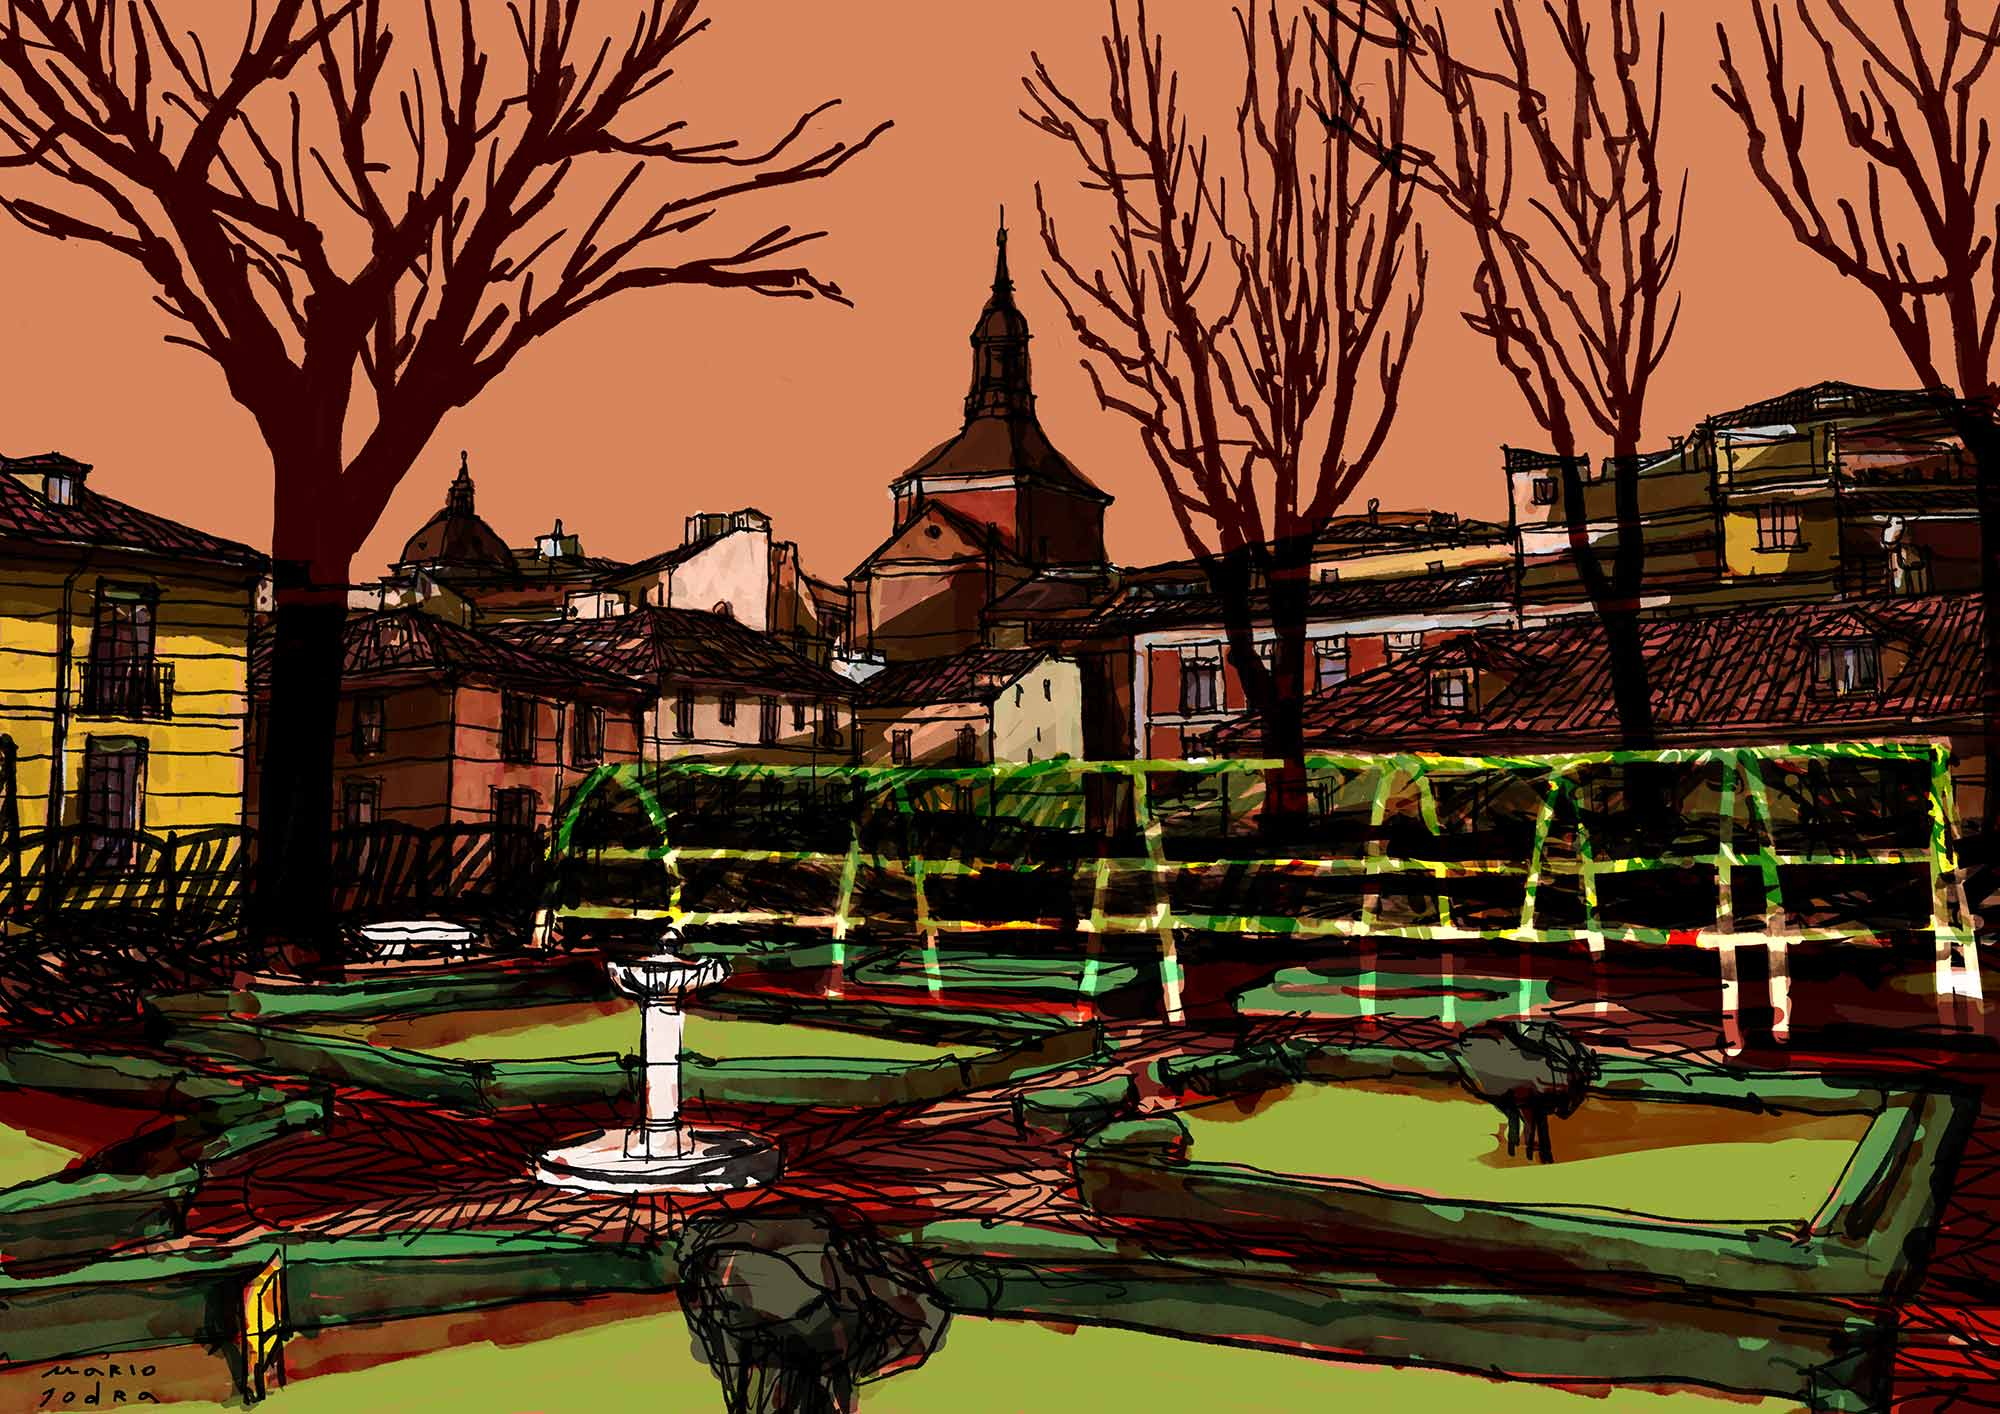 Mario Jodra illustration - Winter sunset at Prince of Anglona Garden - Atardecer de invierno en el jardín del Príncipe de Anglona, Madrid.